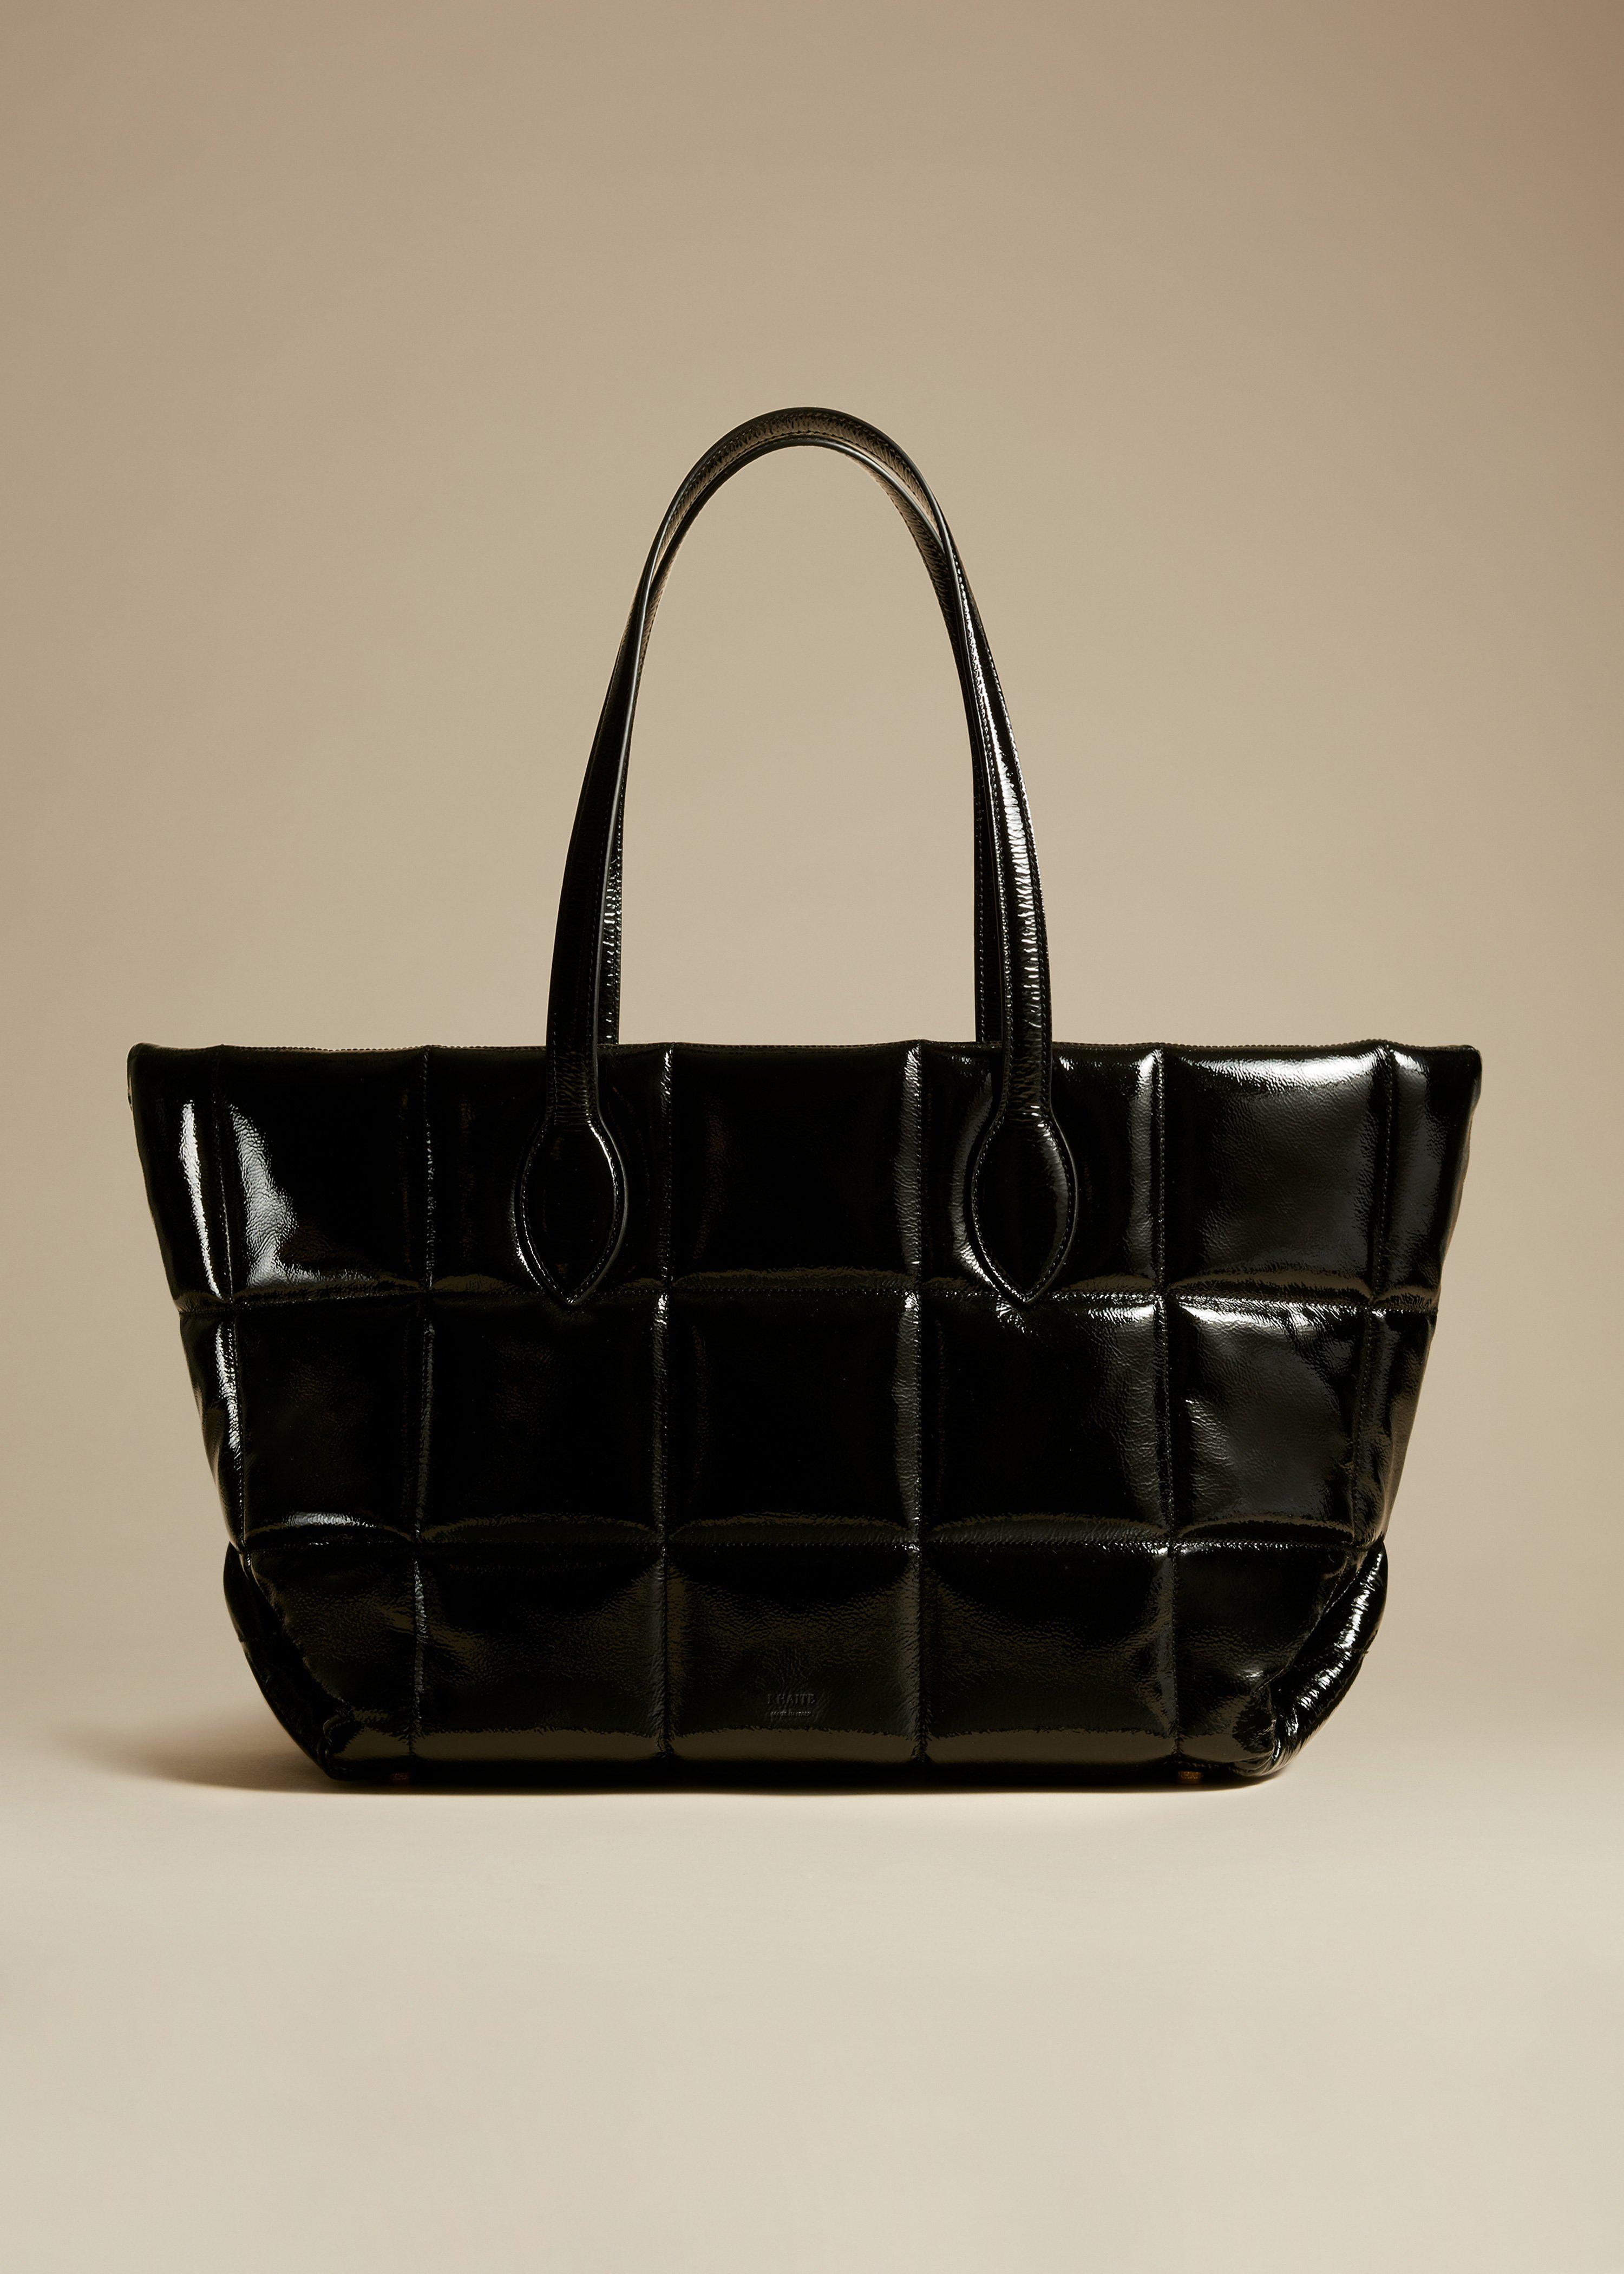 The Florence Quilted Tote in Black Patent Leather